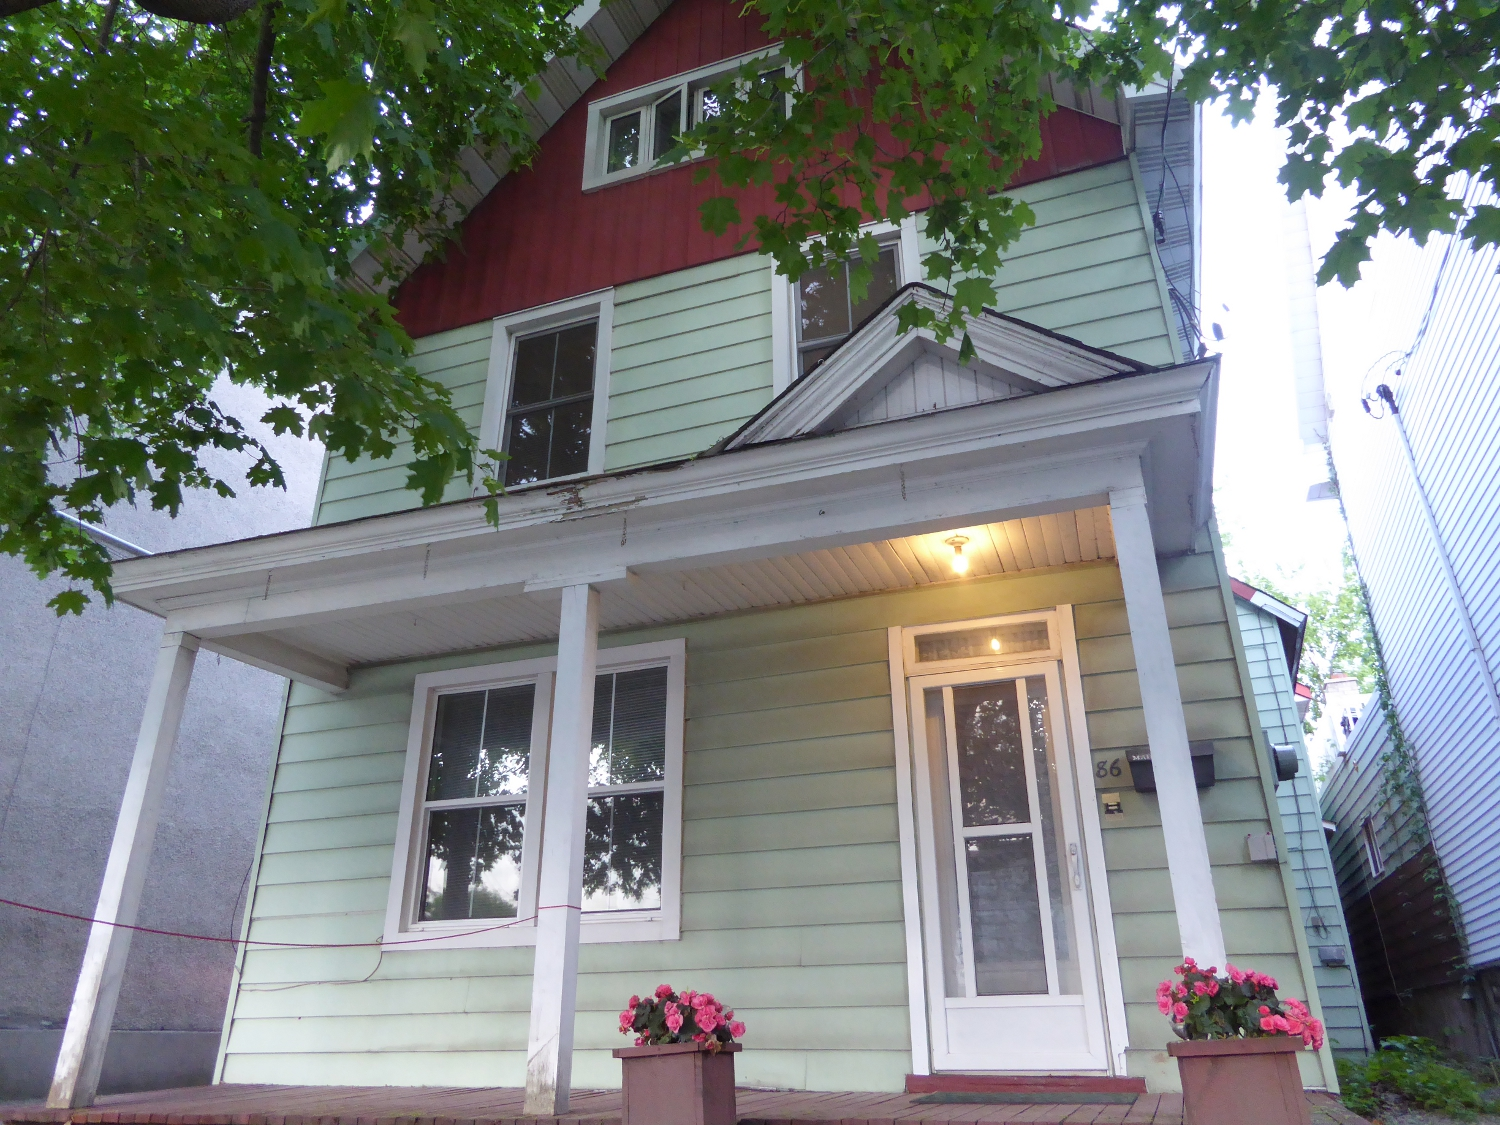 86 Bruyère St – Sold August 2015